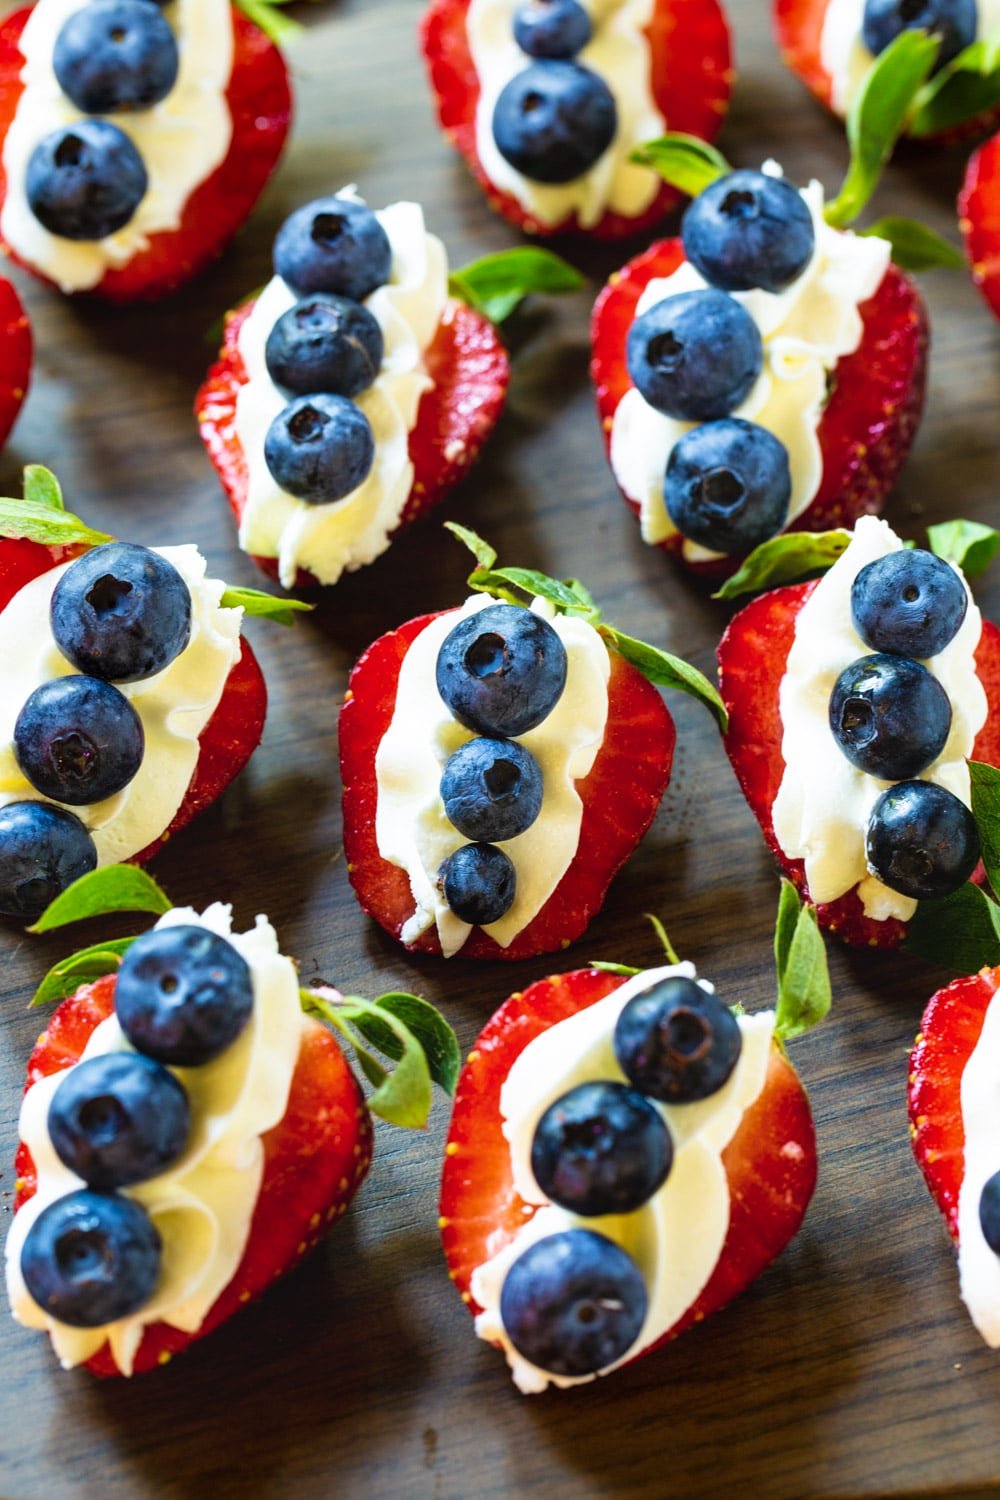 Cheesecake Stuffed Strawberries topped with blueberries.